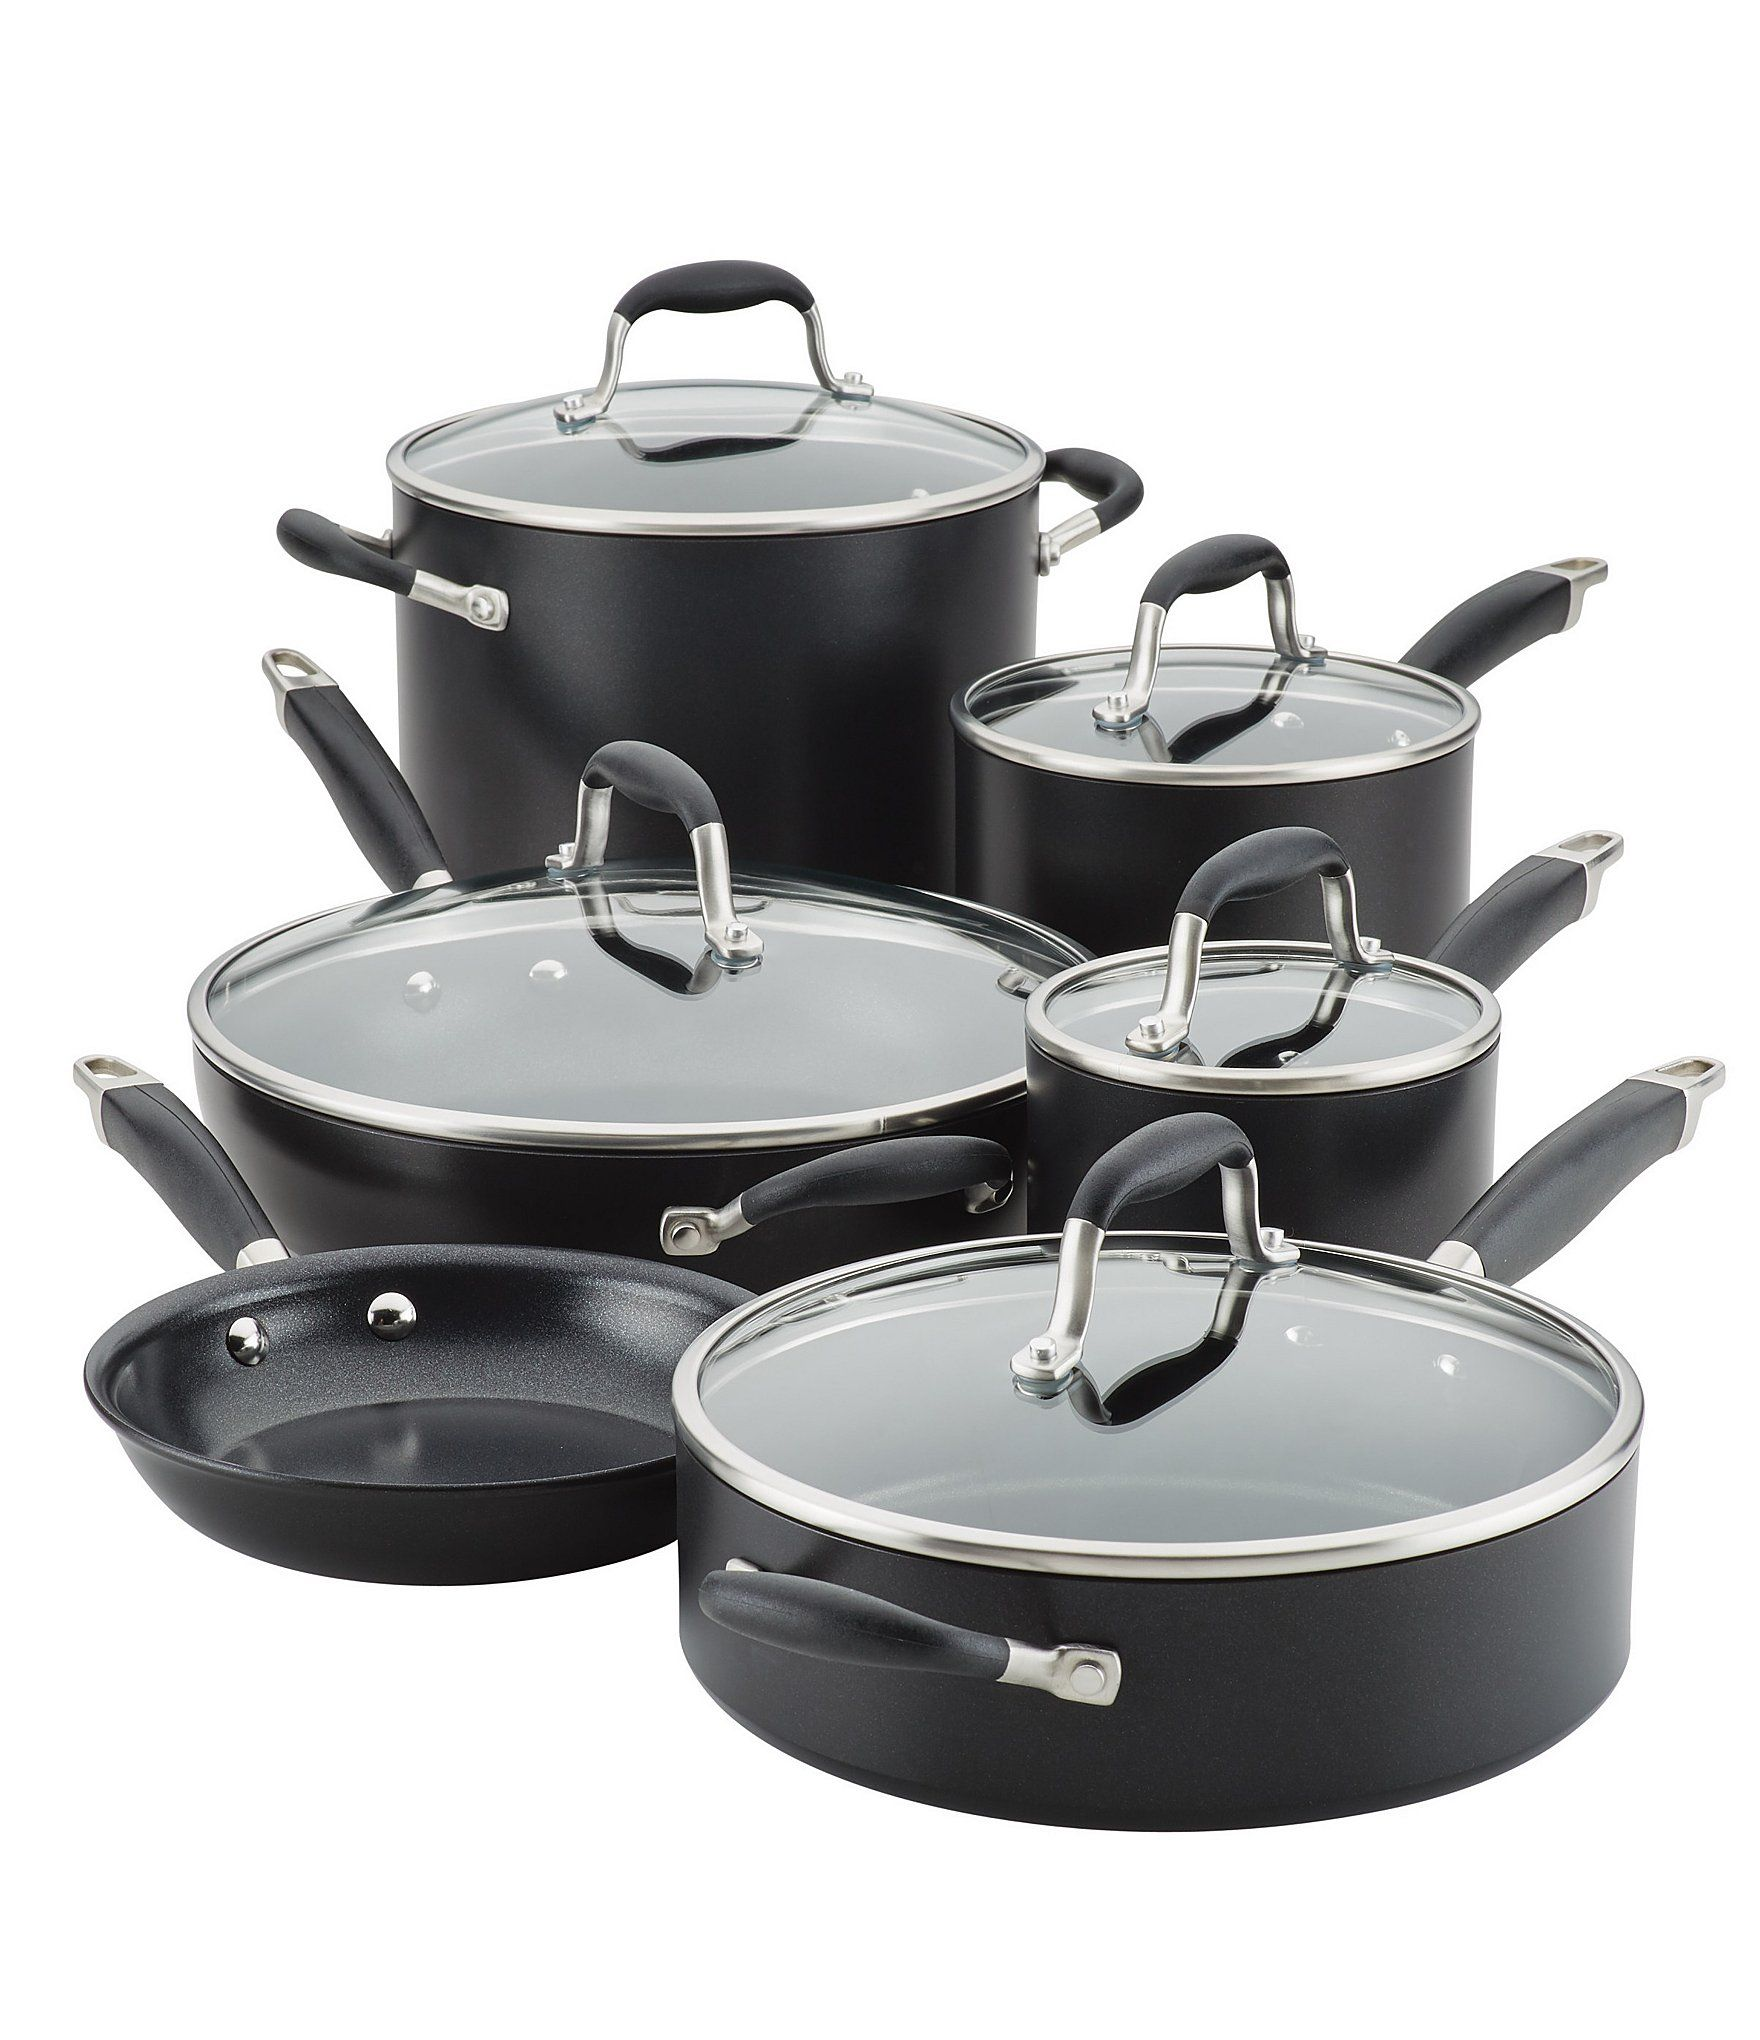 Anolon Advanced Home Hard Anodized Nonstick 11 Piece Cookware Set